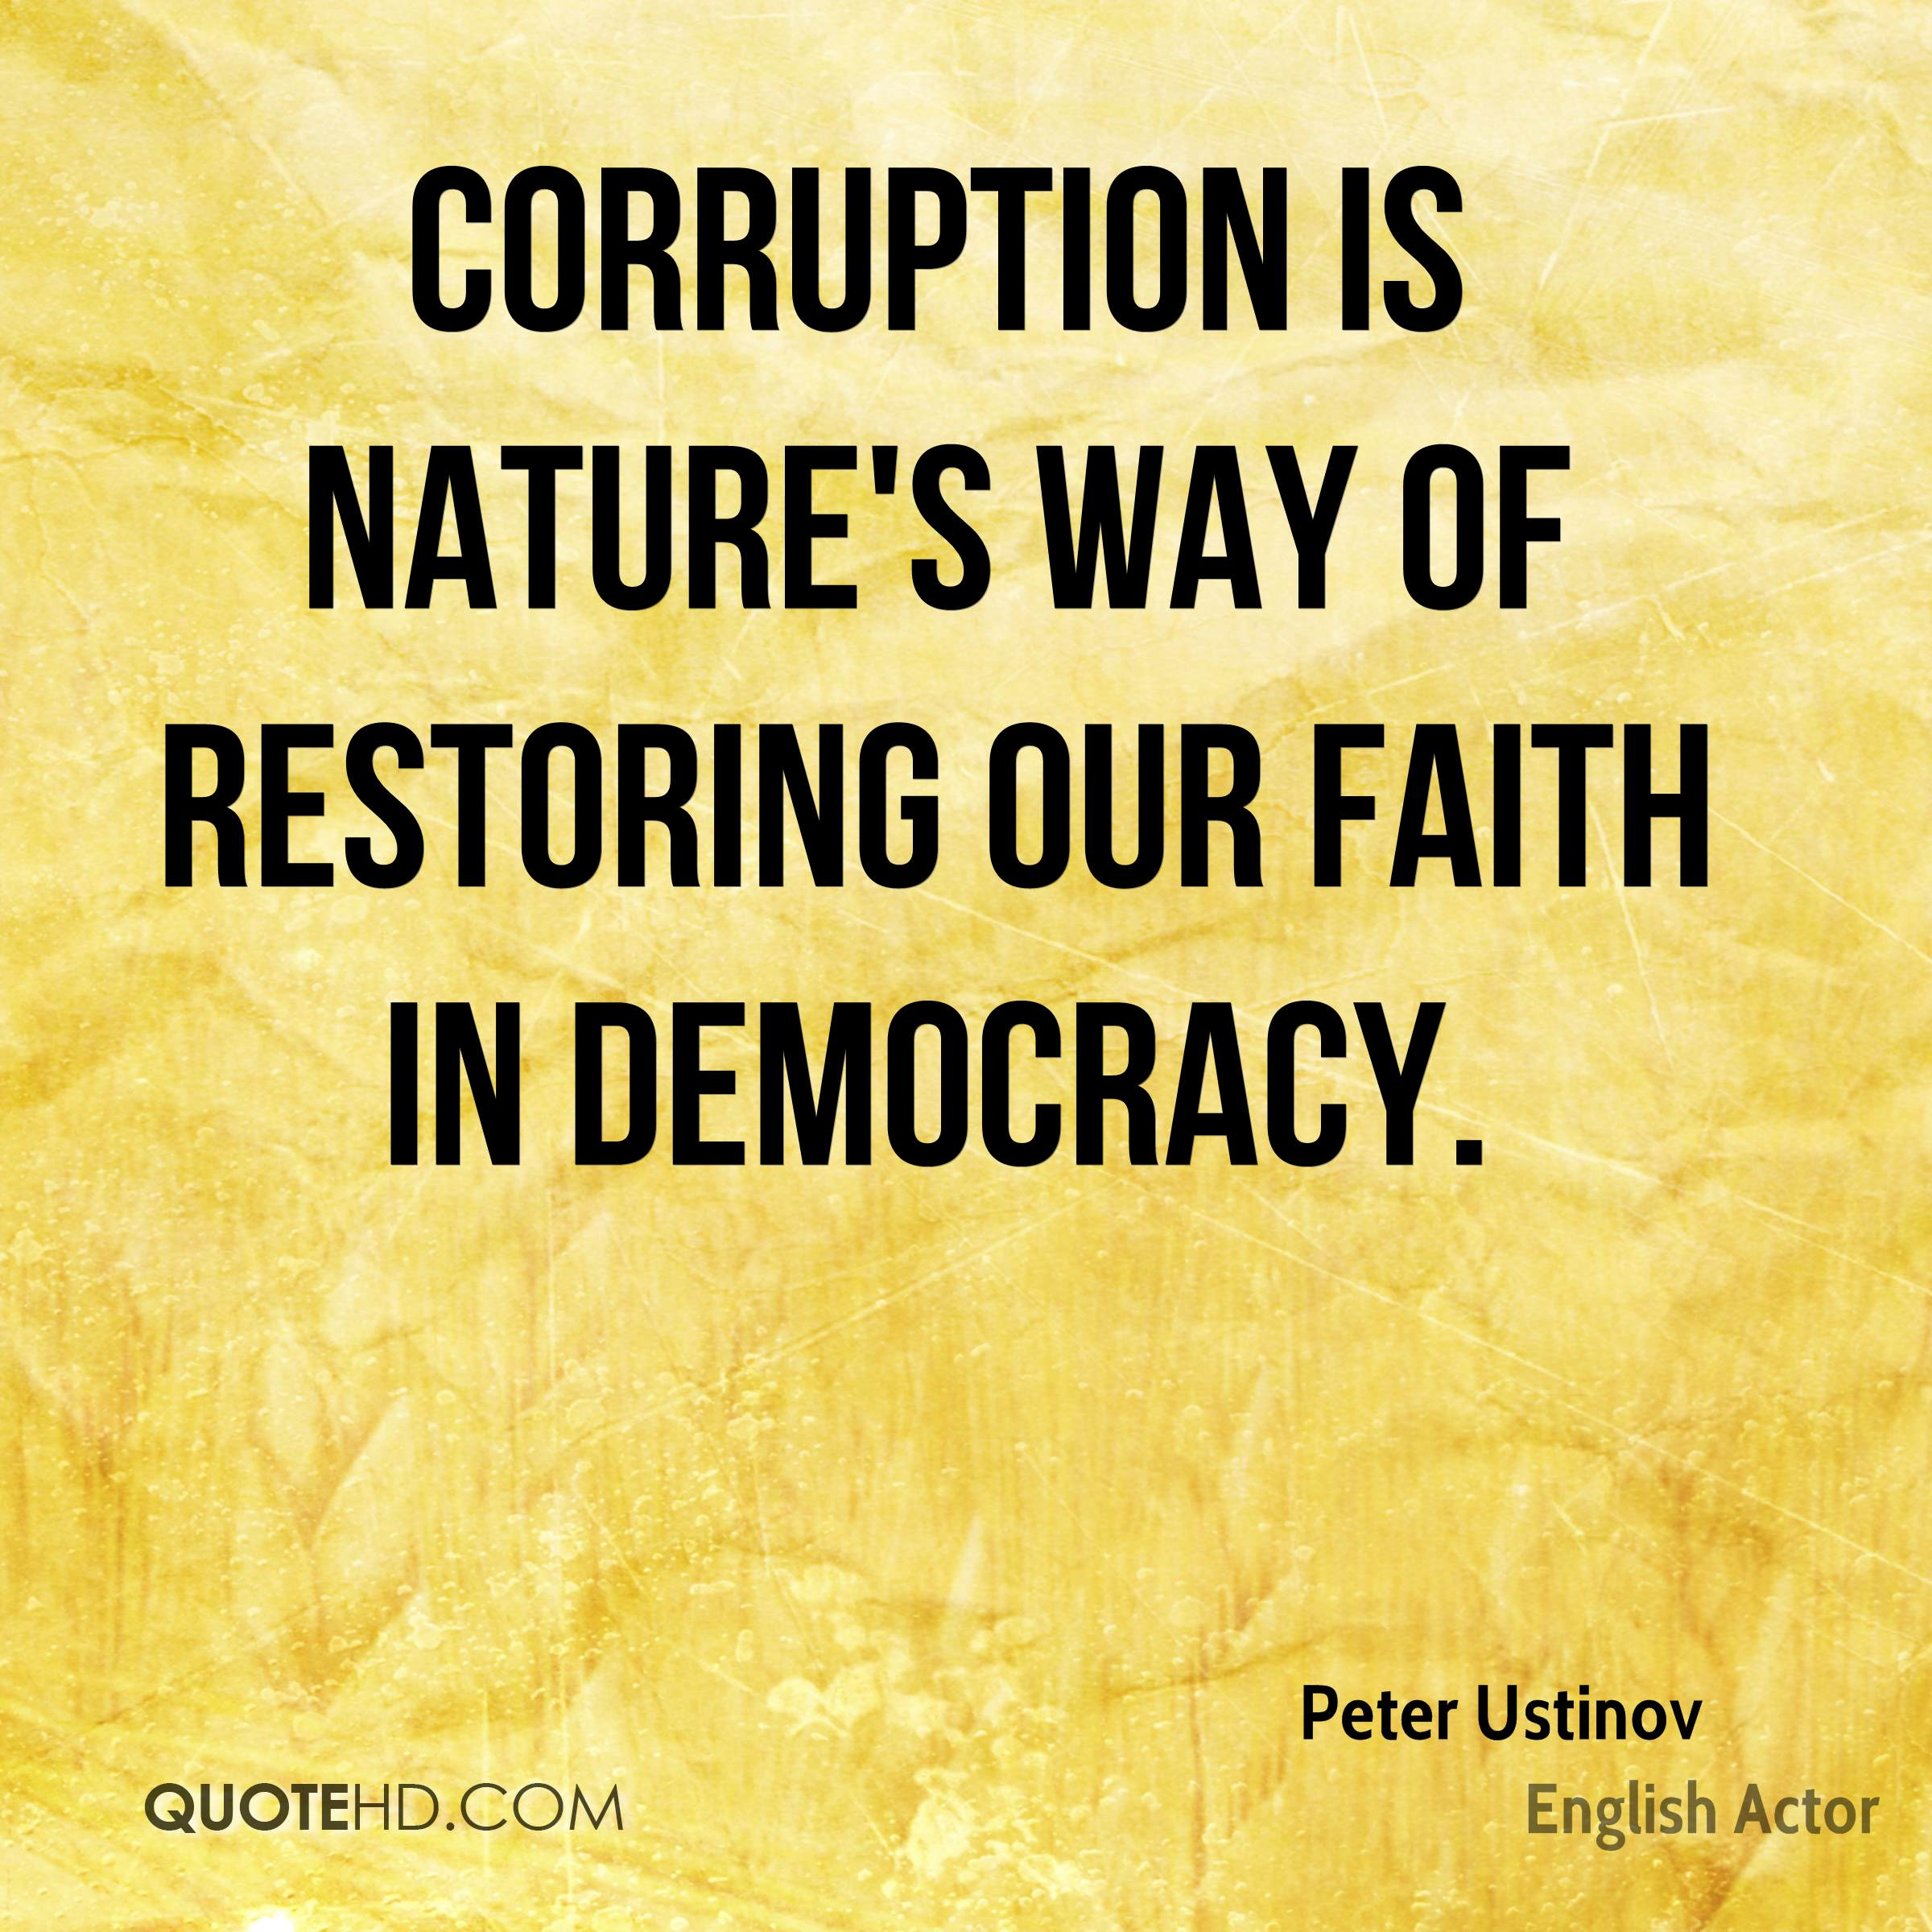 Quotes About Corruption: Peter Ustinov Nature Quotes